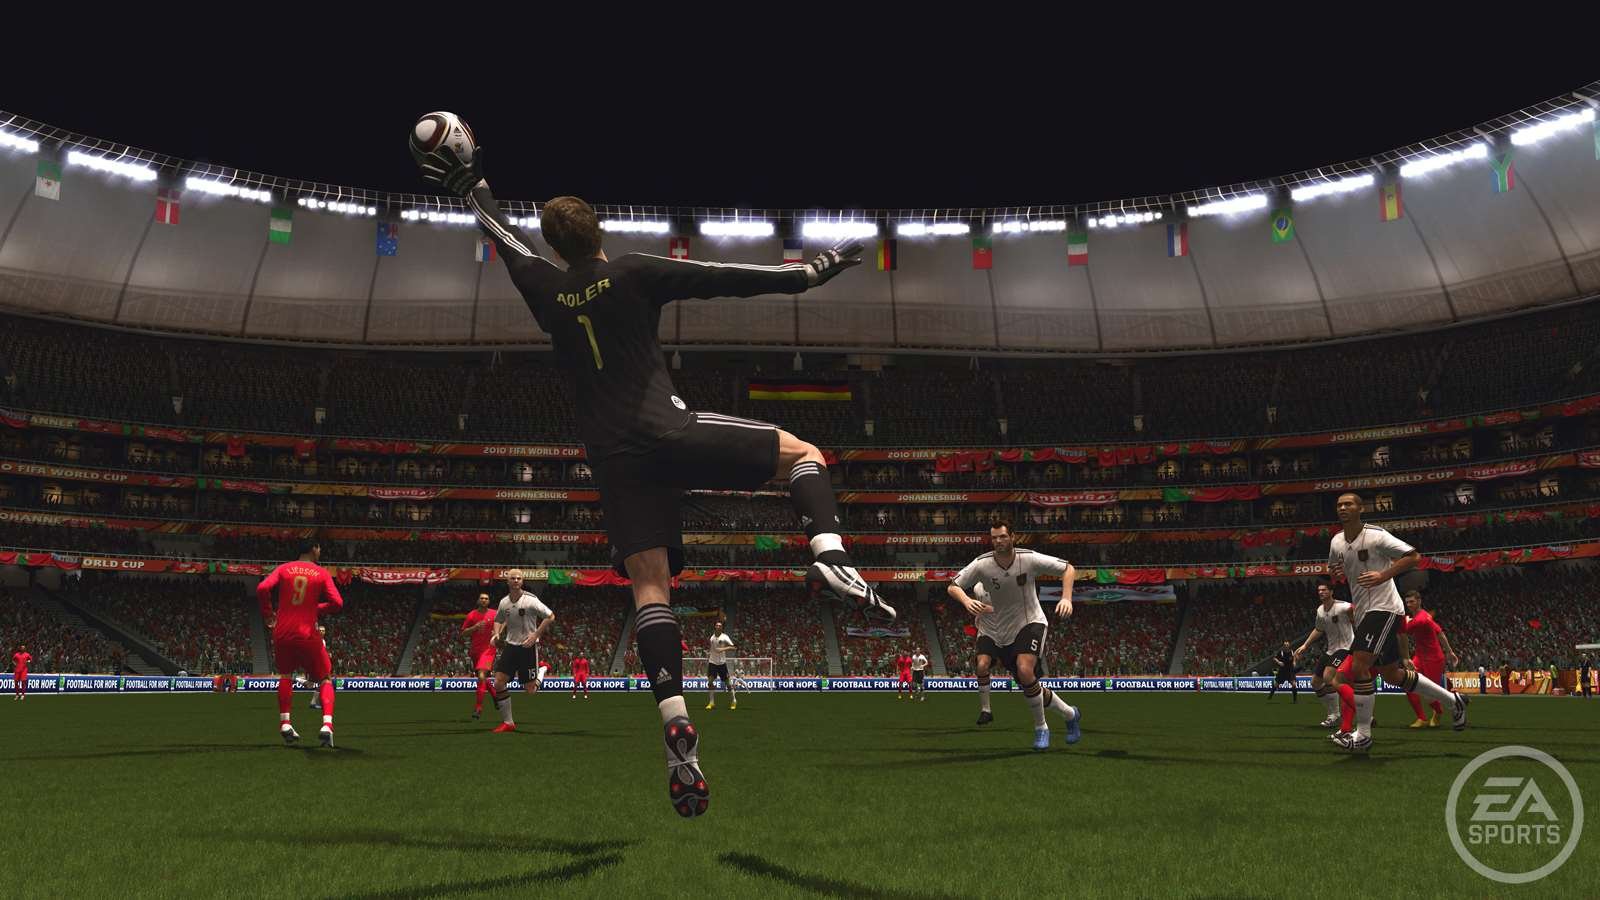 Fifa World Cup South Africa 2010 High Quality Background on Wallpapers Vista